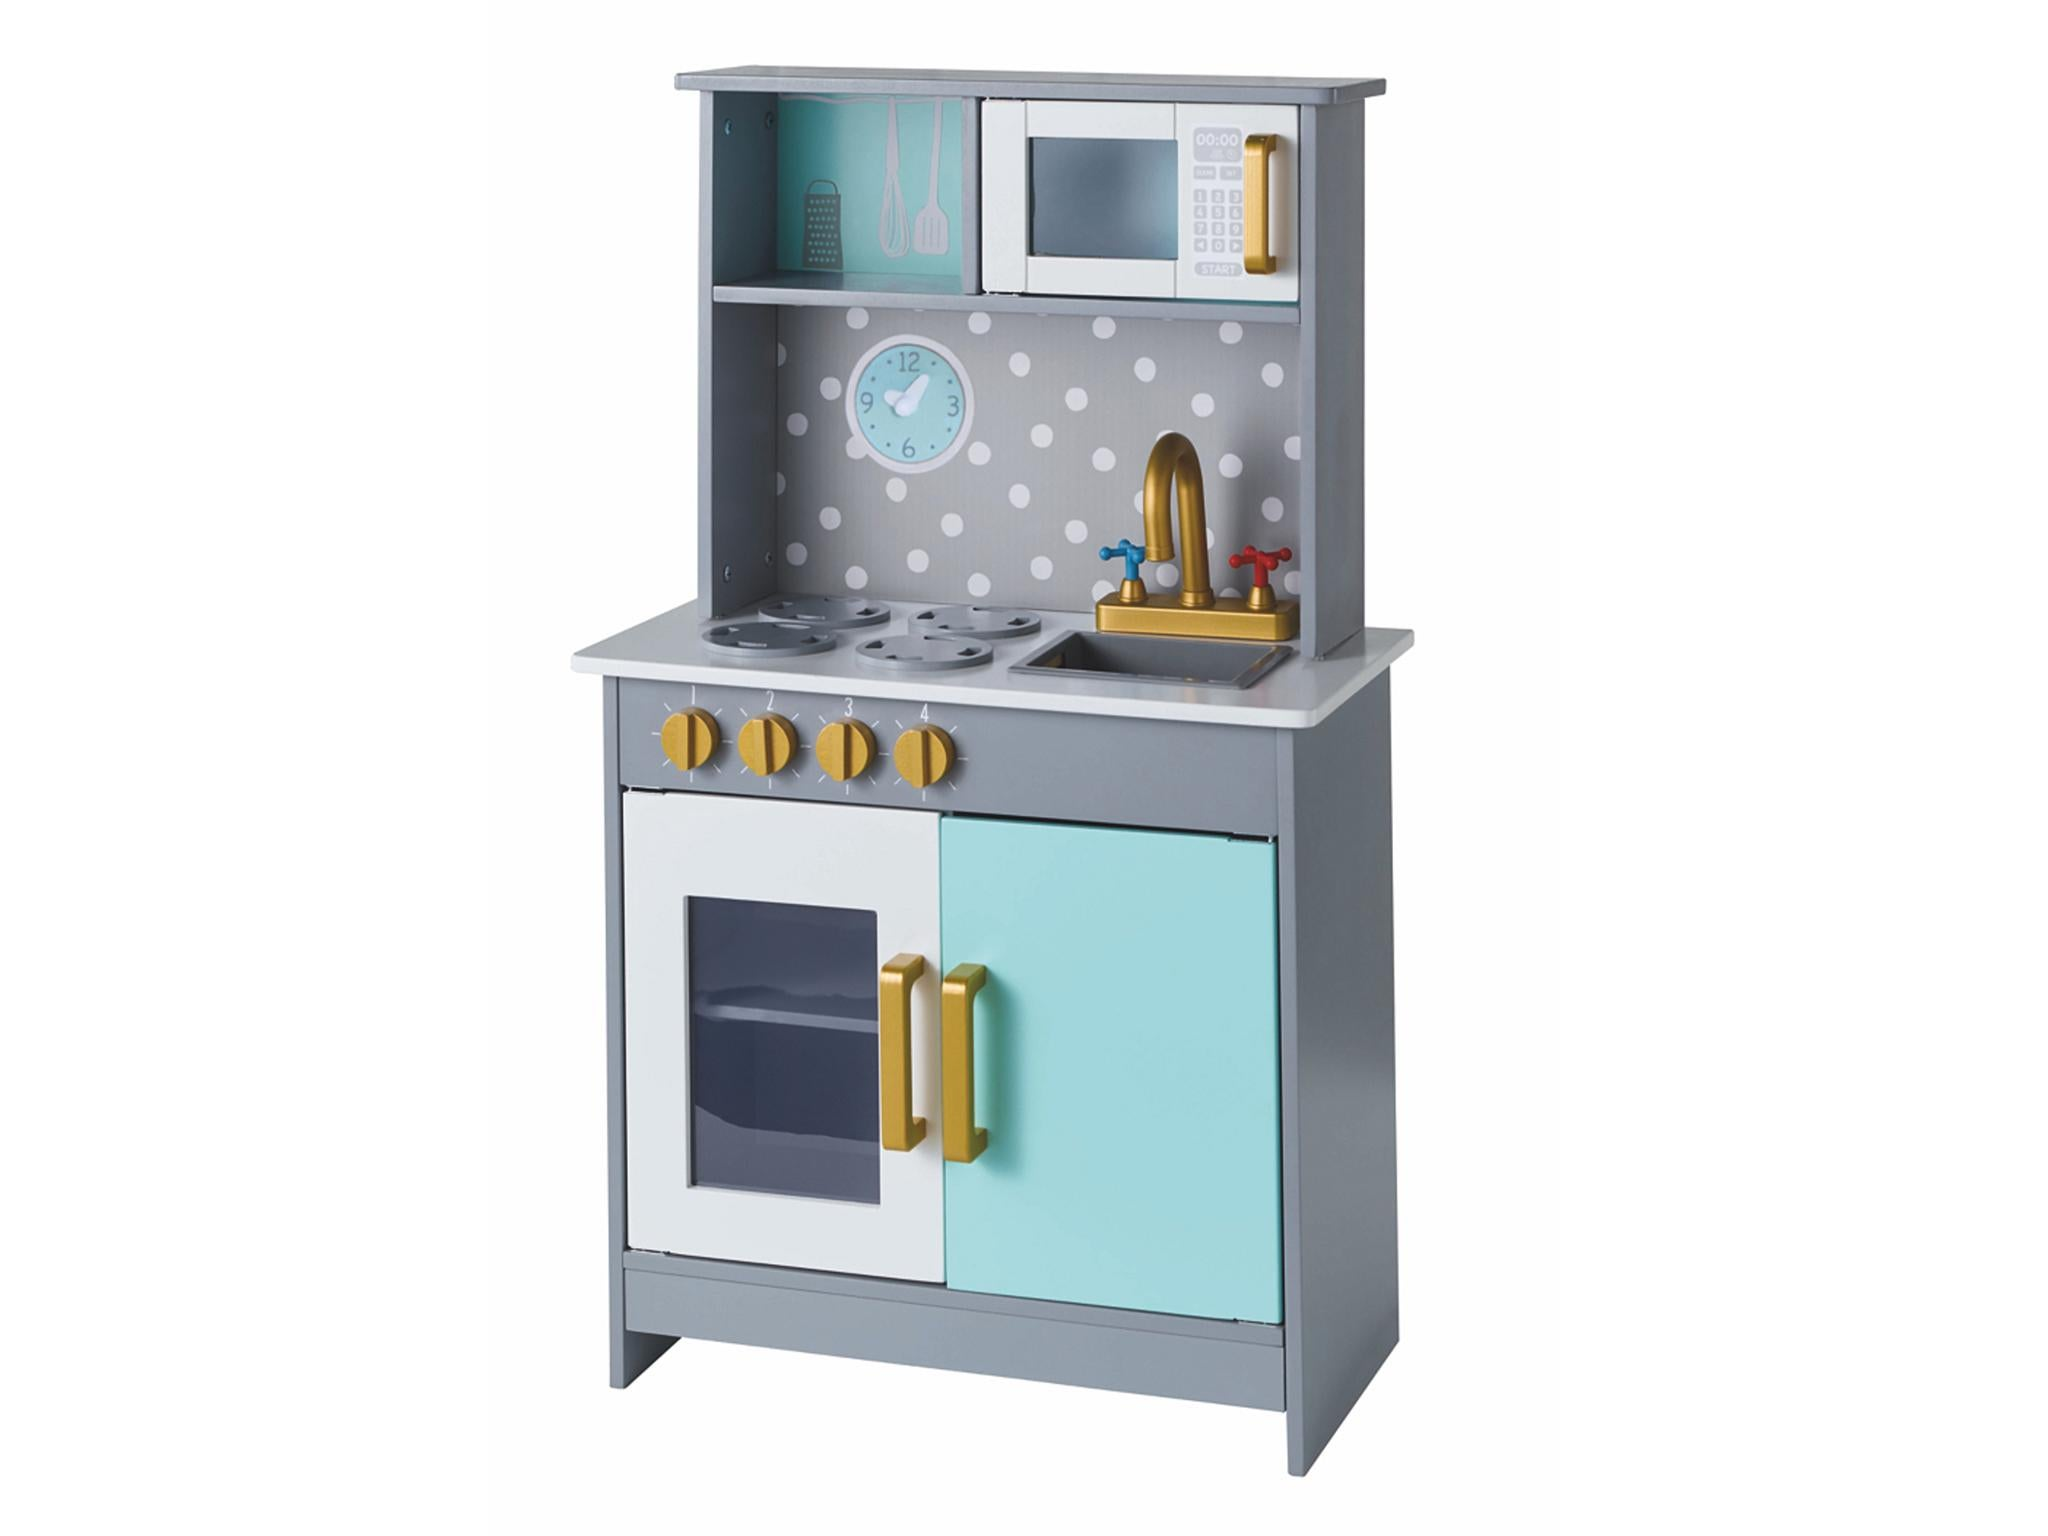 db89f36bea5 10 best play kitchens